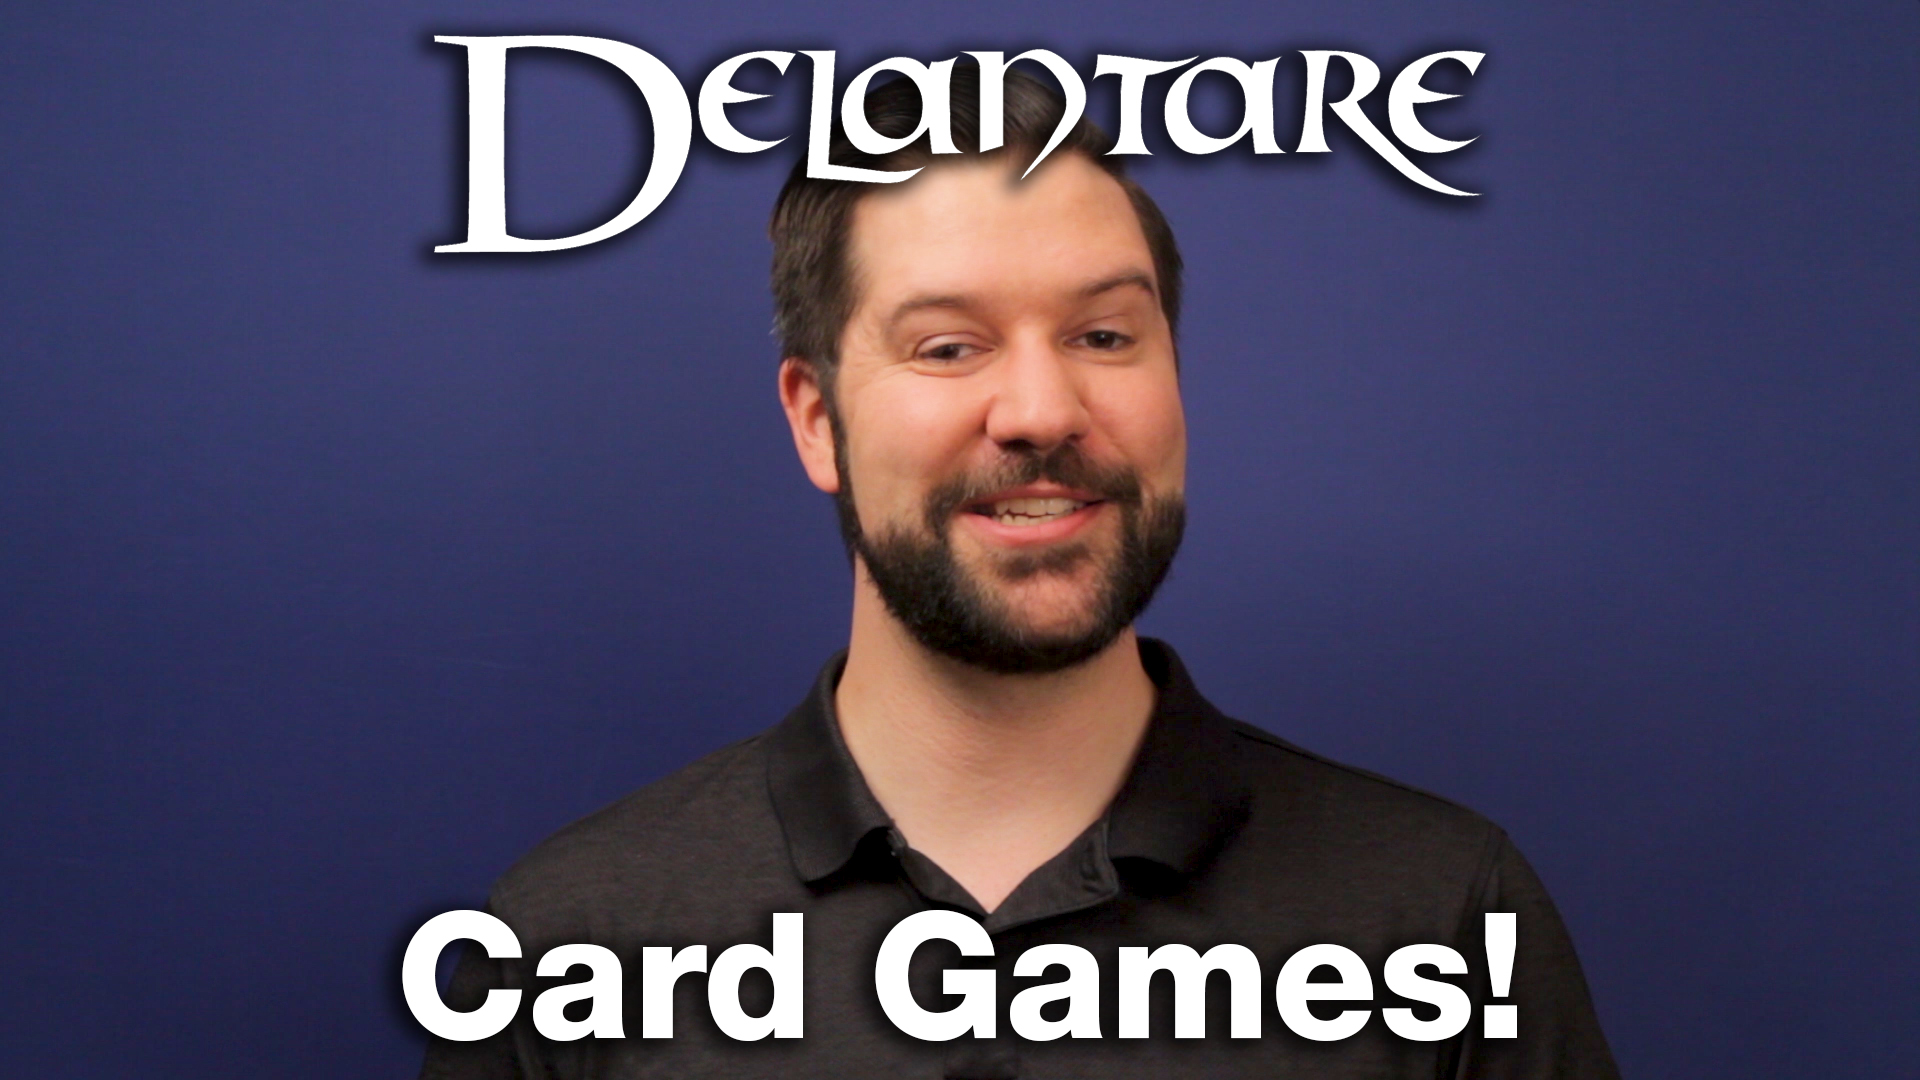 Delantare Card Games | Zack Lawrence